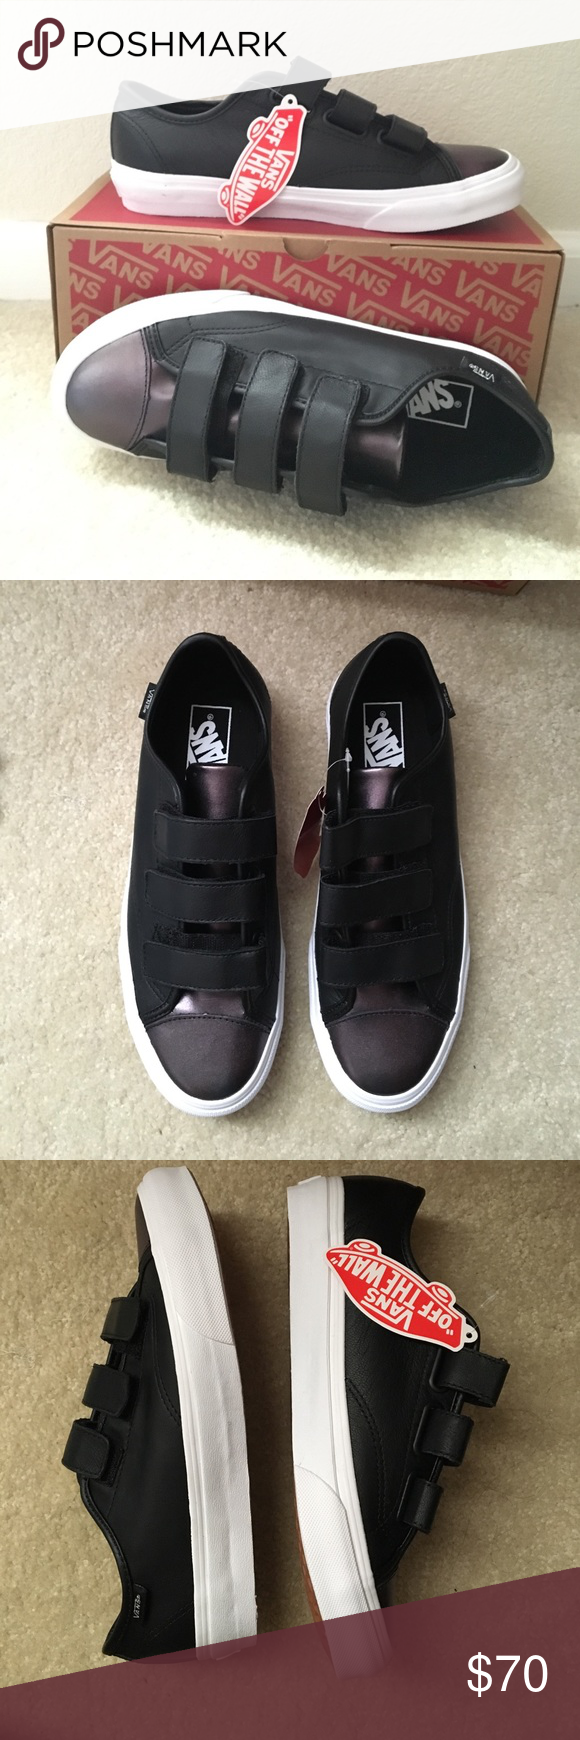 Vans Gunmetal Velcro Sneakers Black and gunmetal Velcro Vans sneakers. Never worn. New with tags. W size 8.5. Has a shimmery detail. Comes with original box. Vans Shoes Sneakers